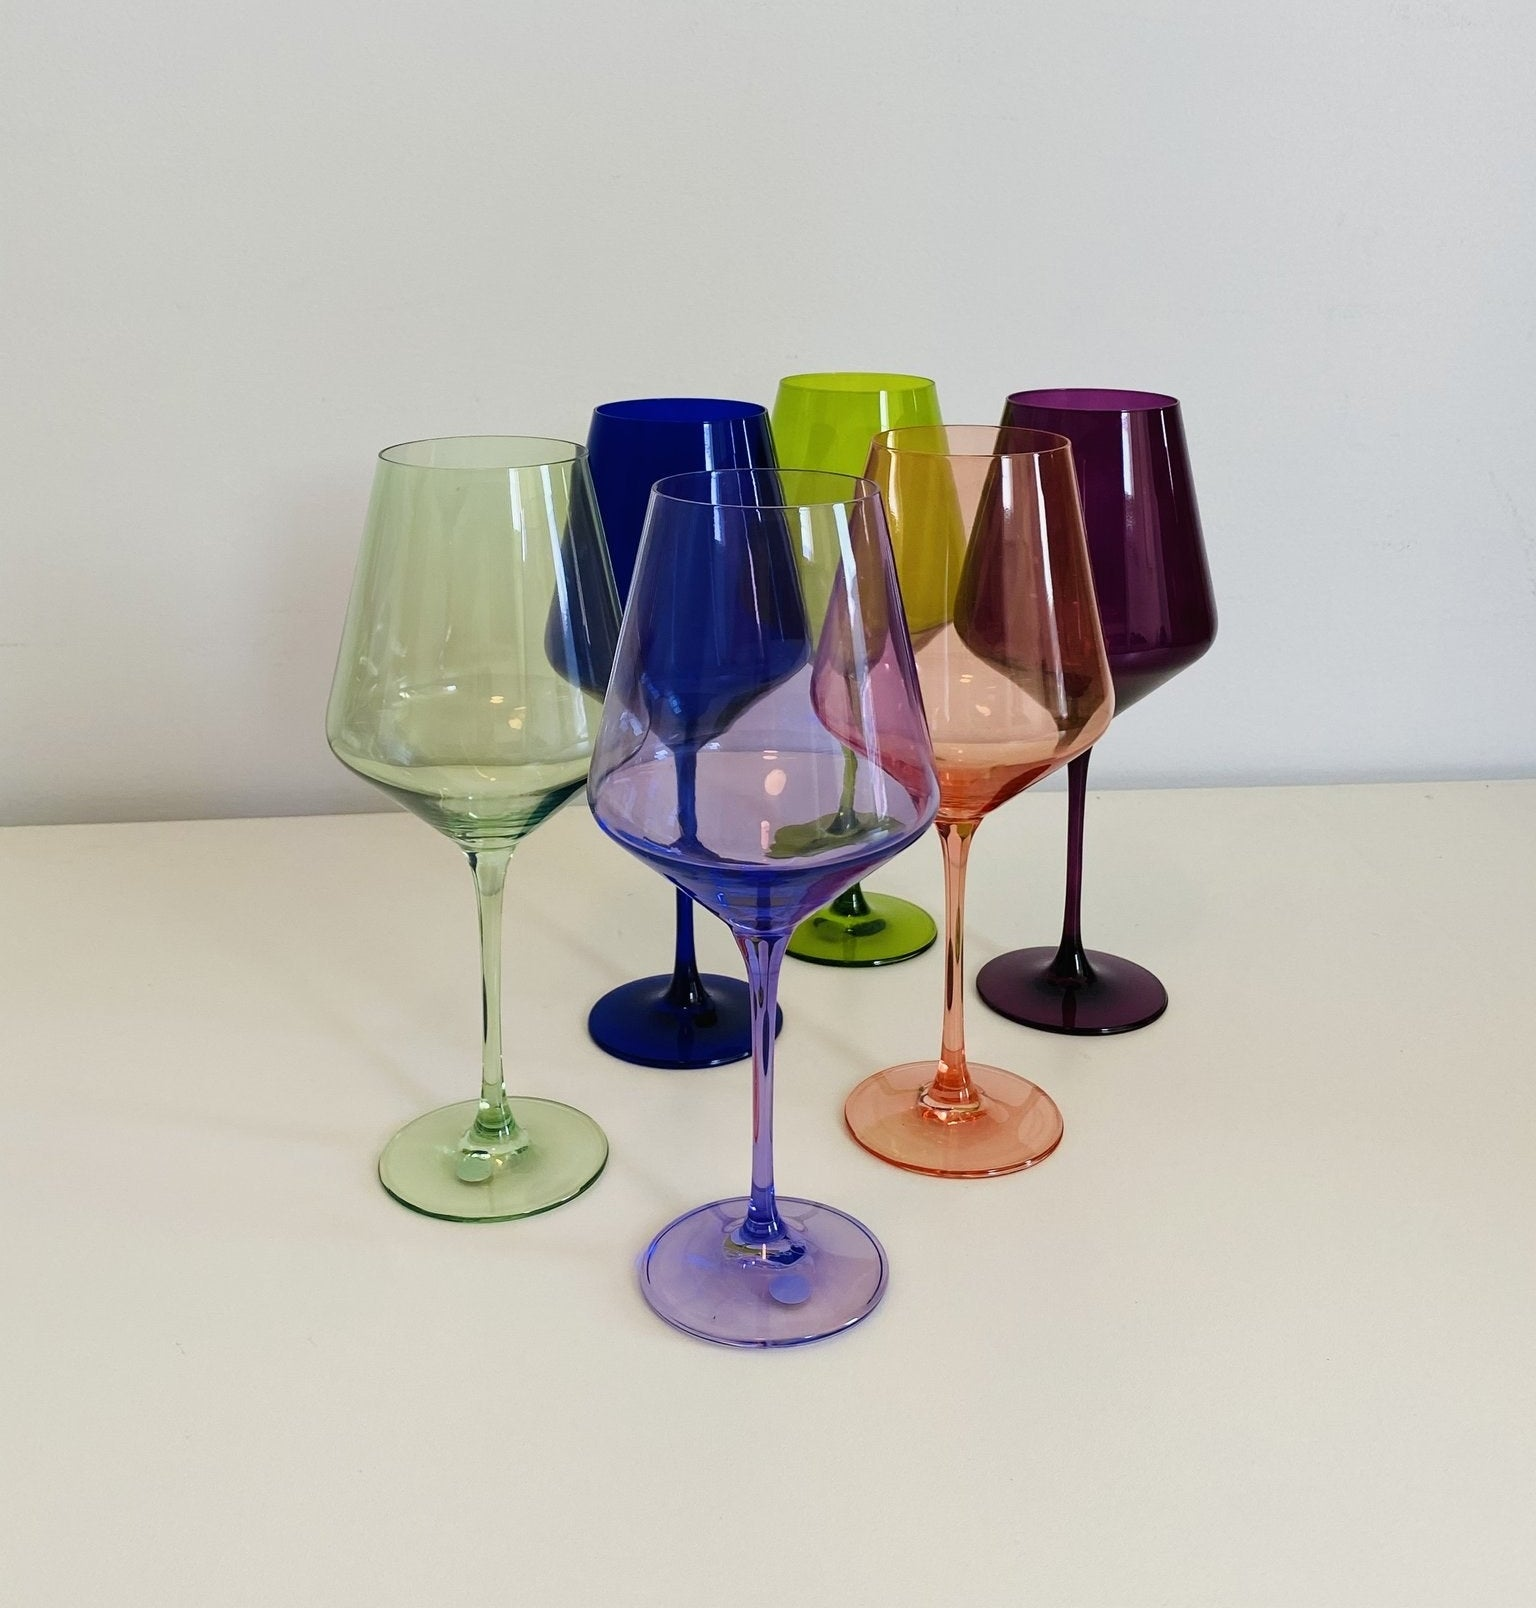 six glasses in pink, green, purple, lime, dark purple, and dark blue